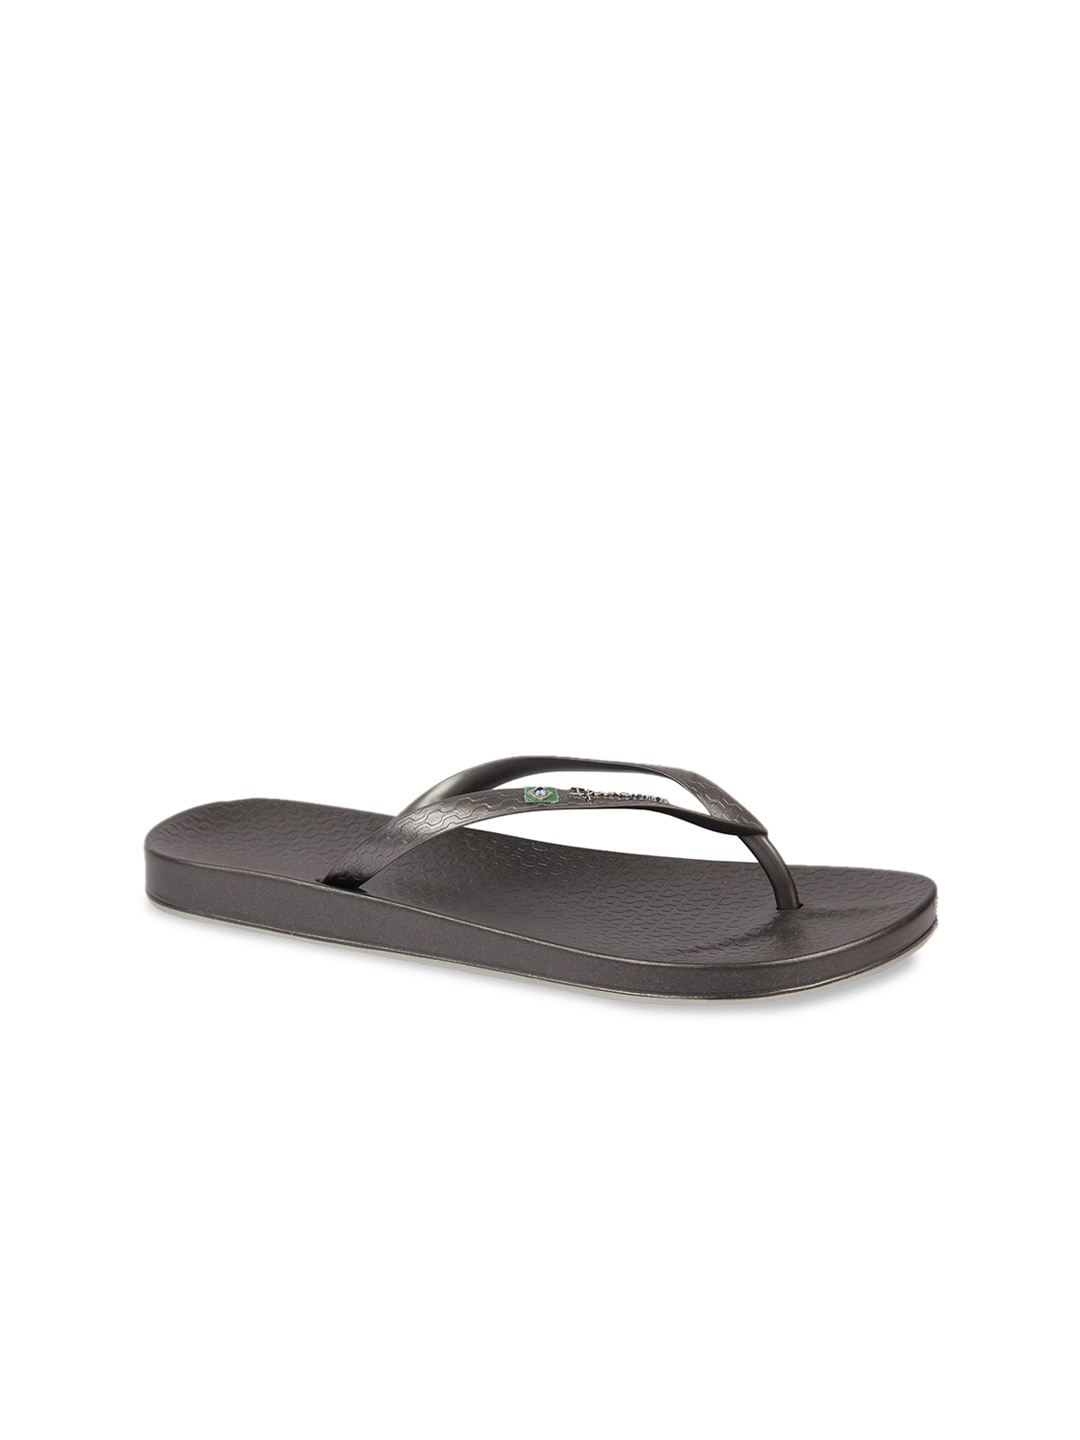 1db409aac19 Ipanema Flip Flops - Buy Ipanema Flip Flops Online in India